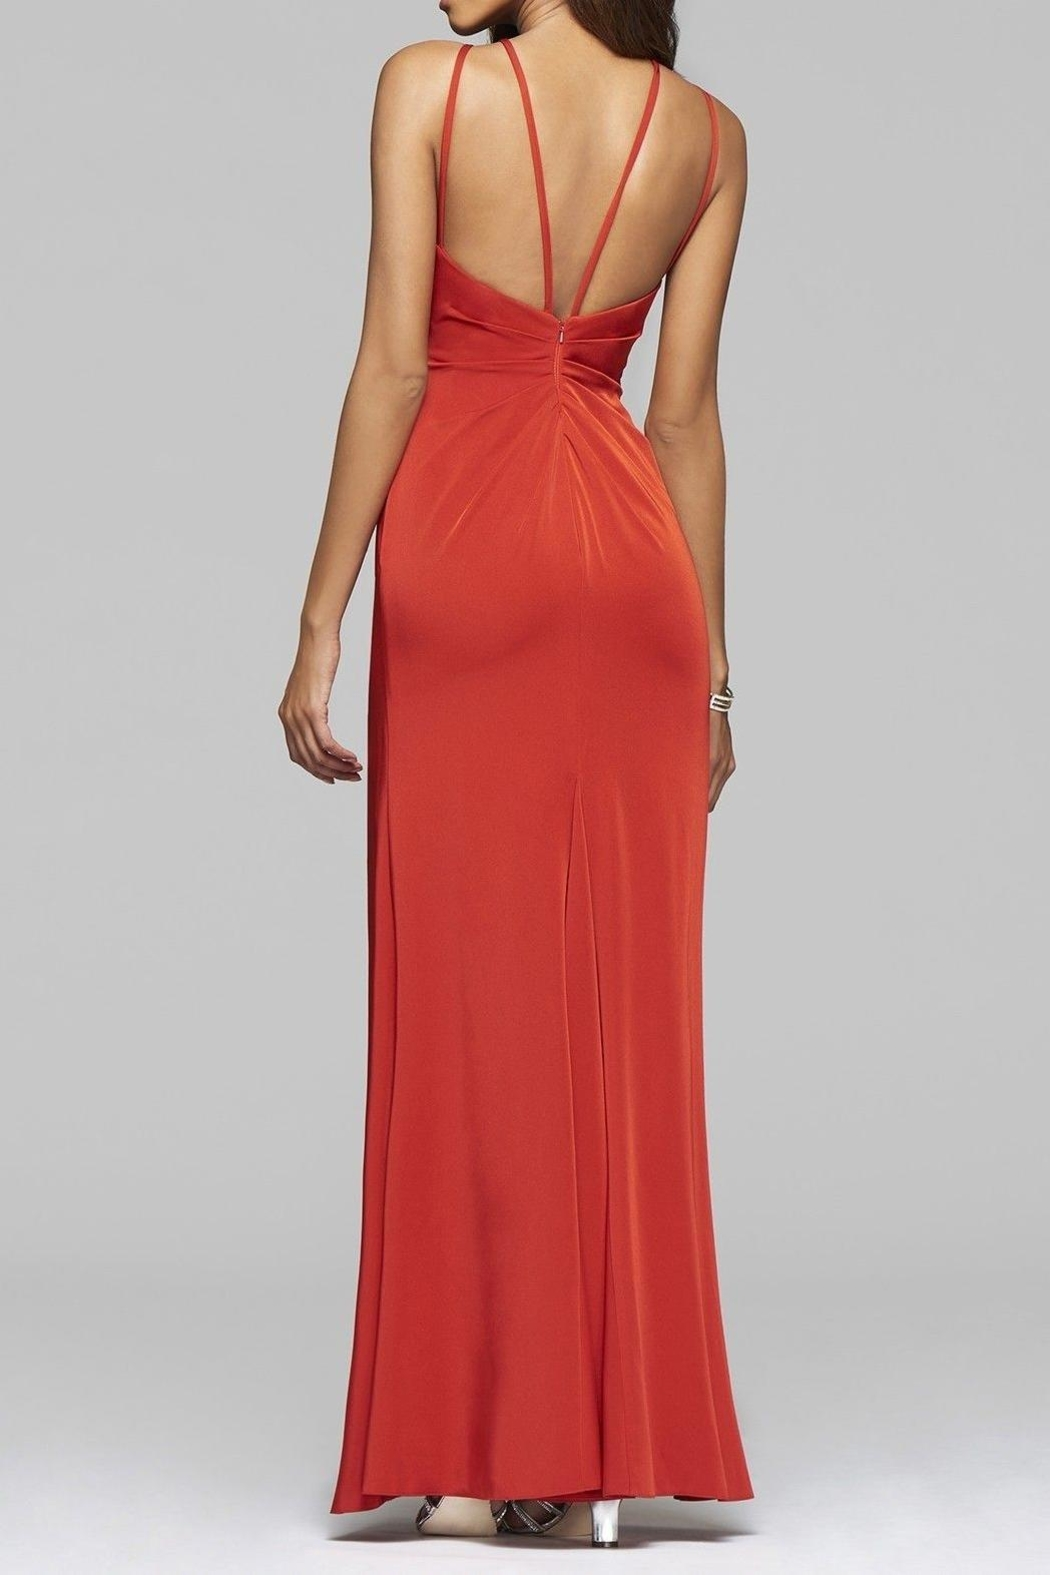 Faviana Beautiful Timeless Gown - Front Full Image